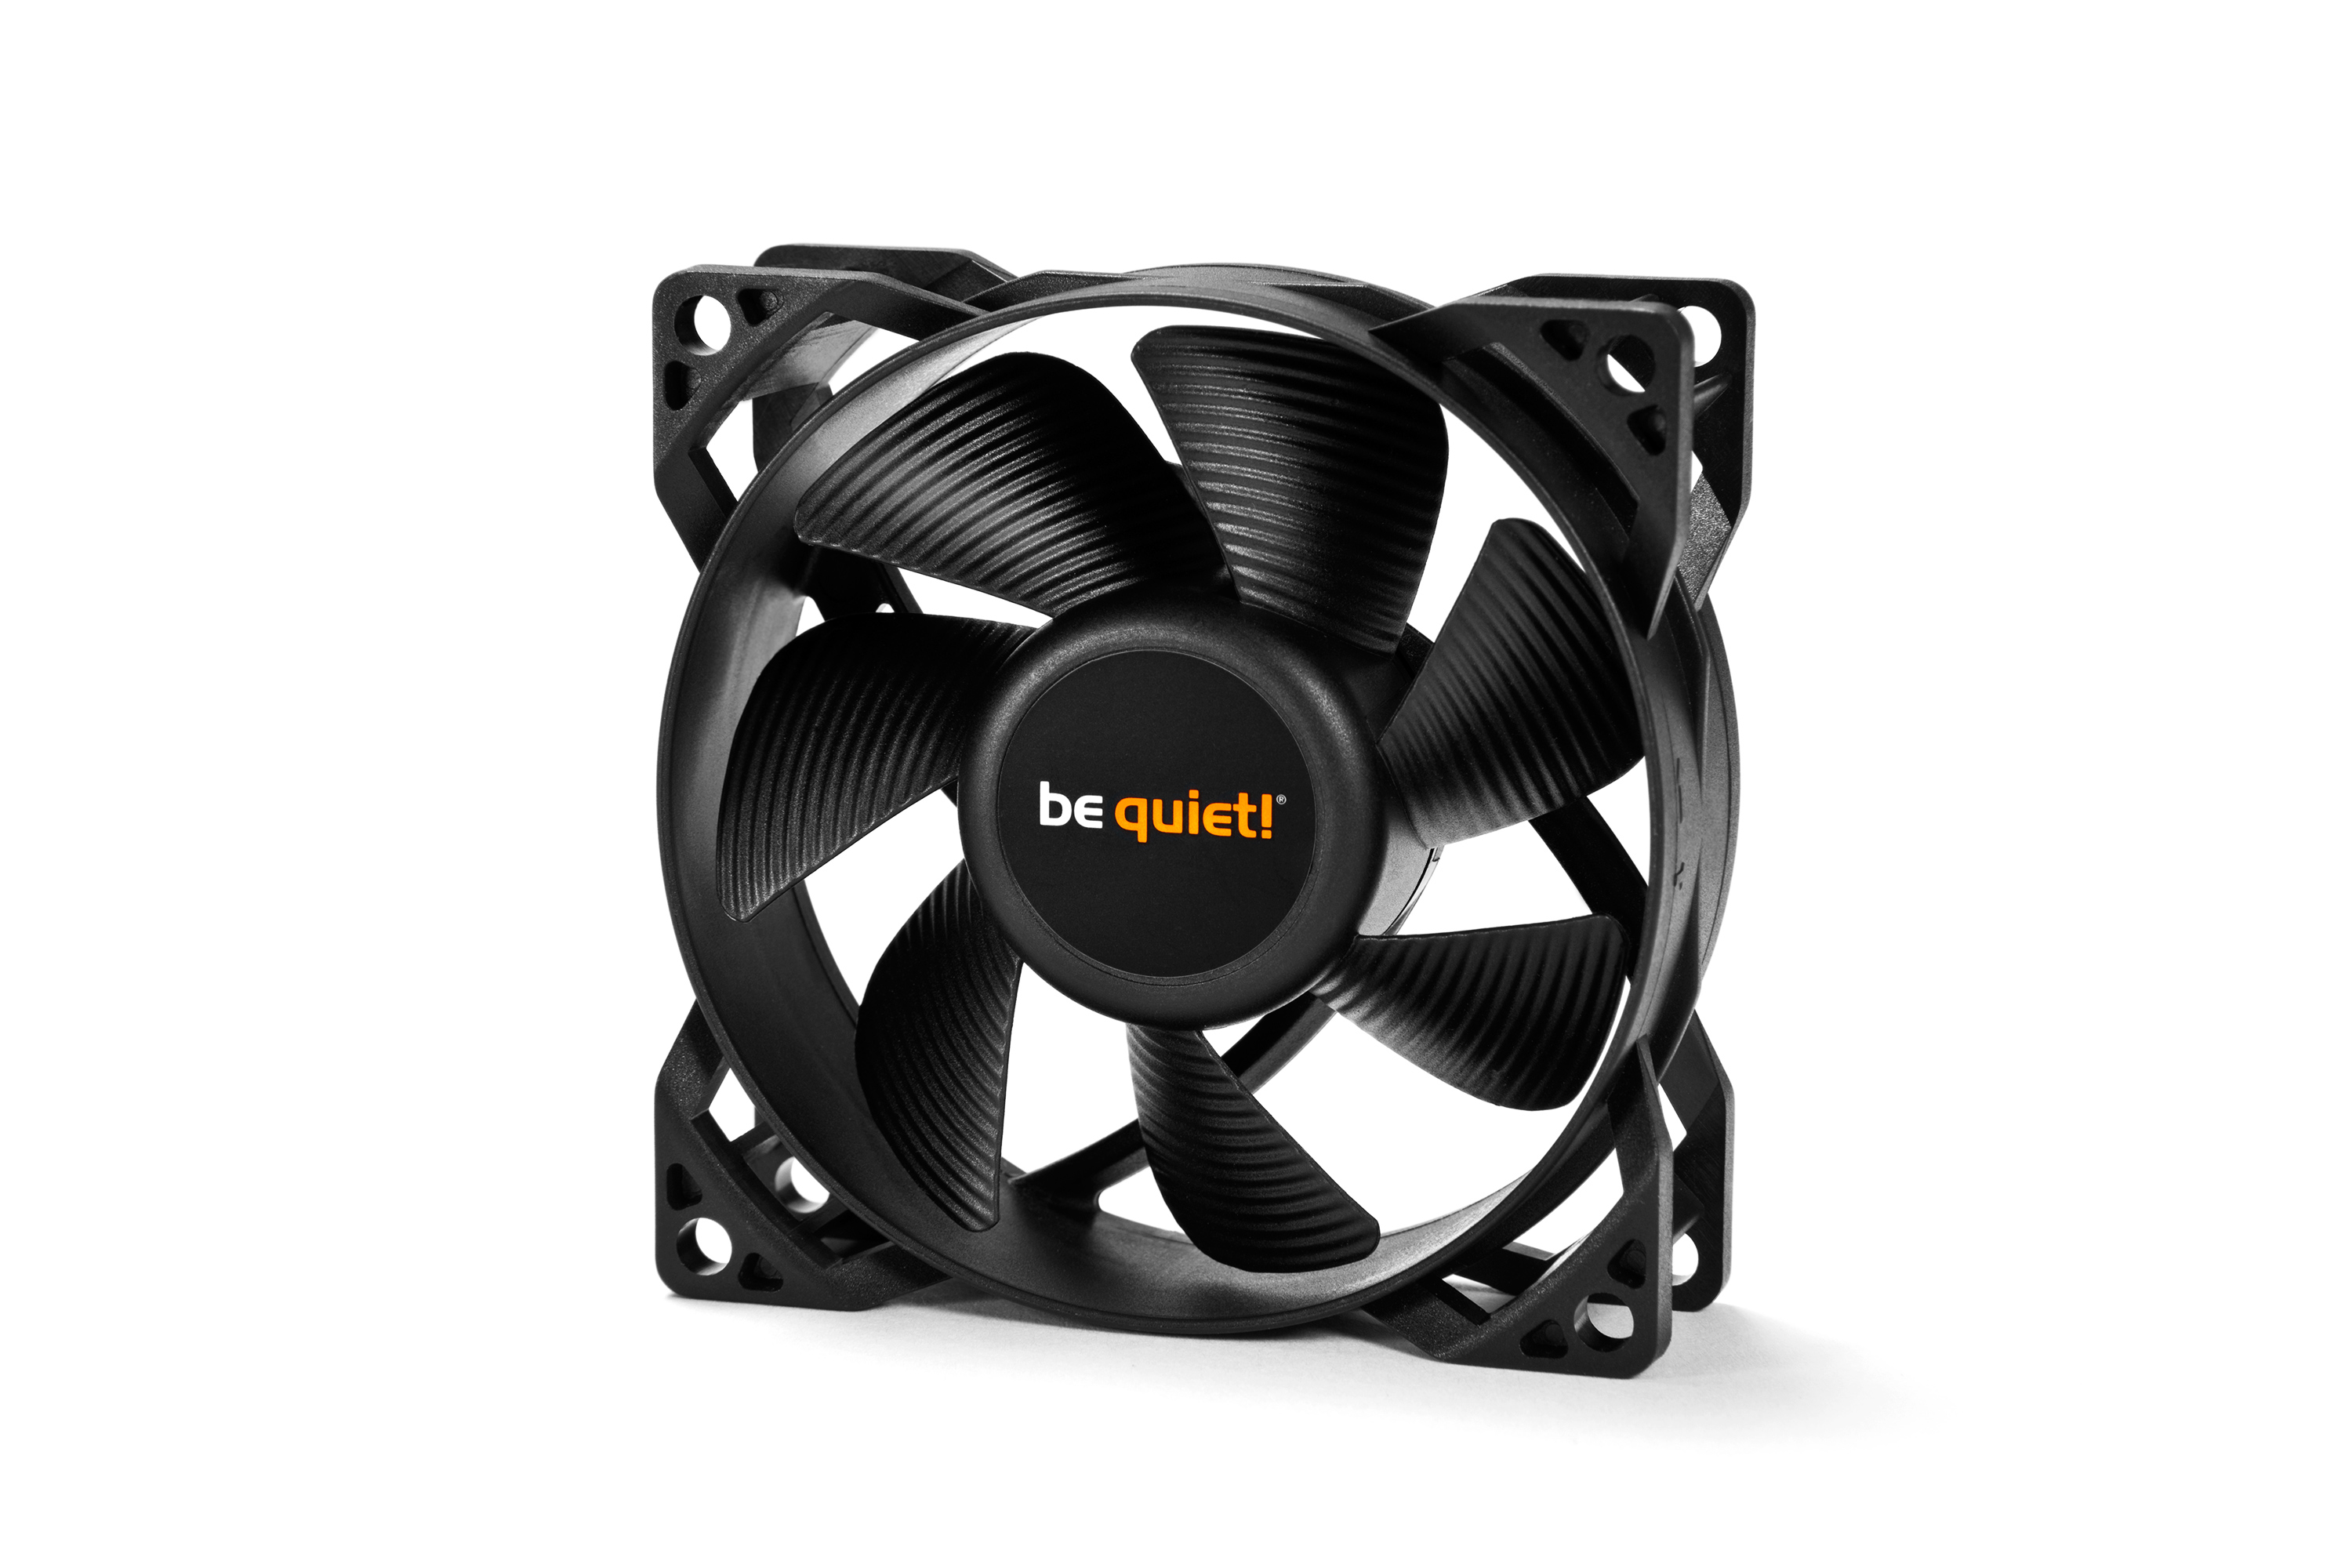 Кулер для корпуса be quiet! Pure Wings 2 80mm PWM (BL037)